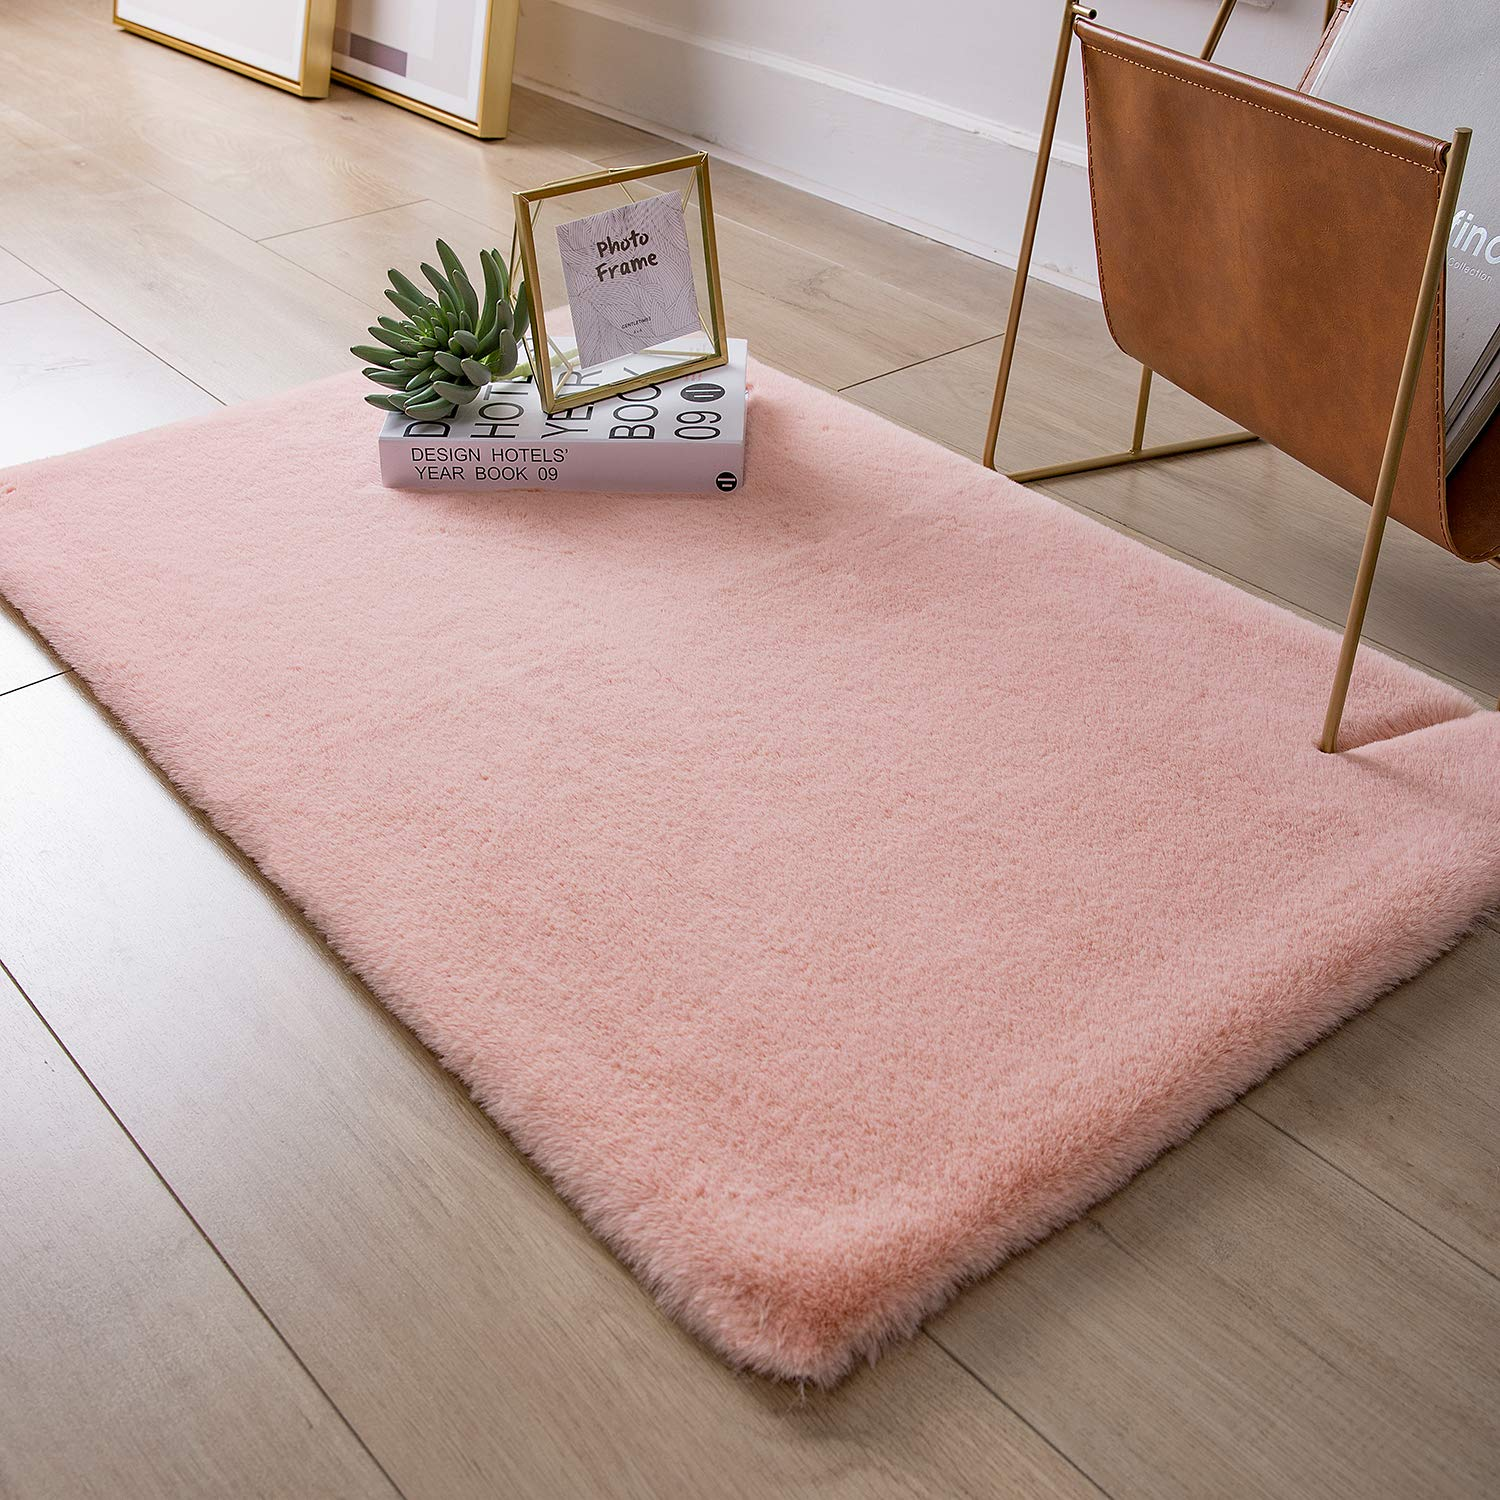 Ashler Soft Faux Rabbit Fur Chair Couch Cover Area Rug for Bedroom Floor Sofa Living Room Beige Rectangle 2 x 3 Feet